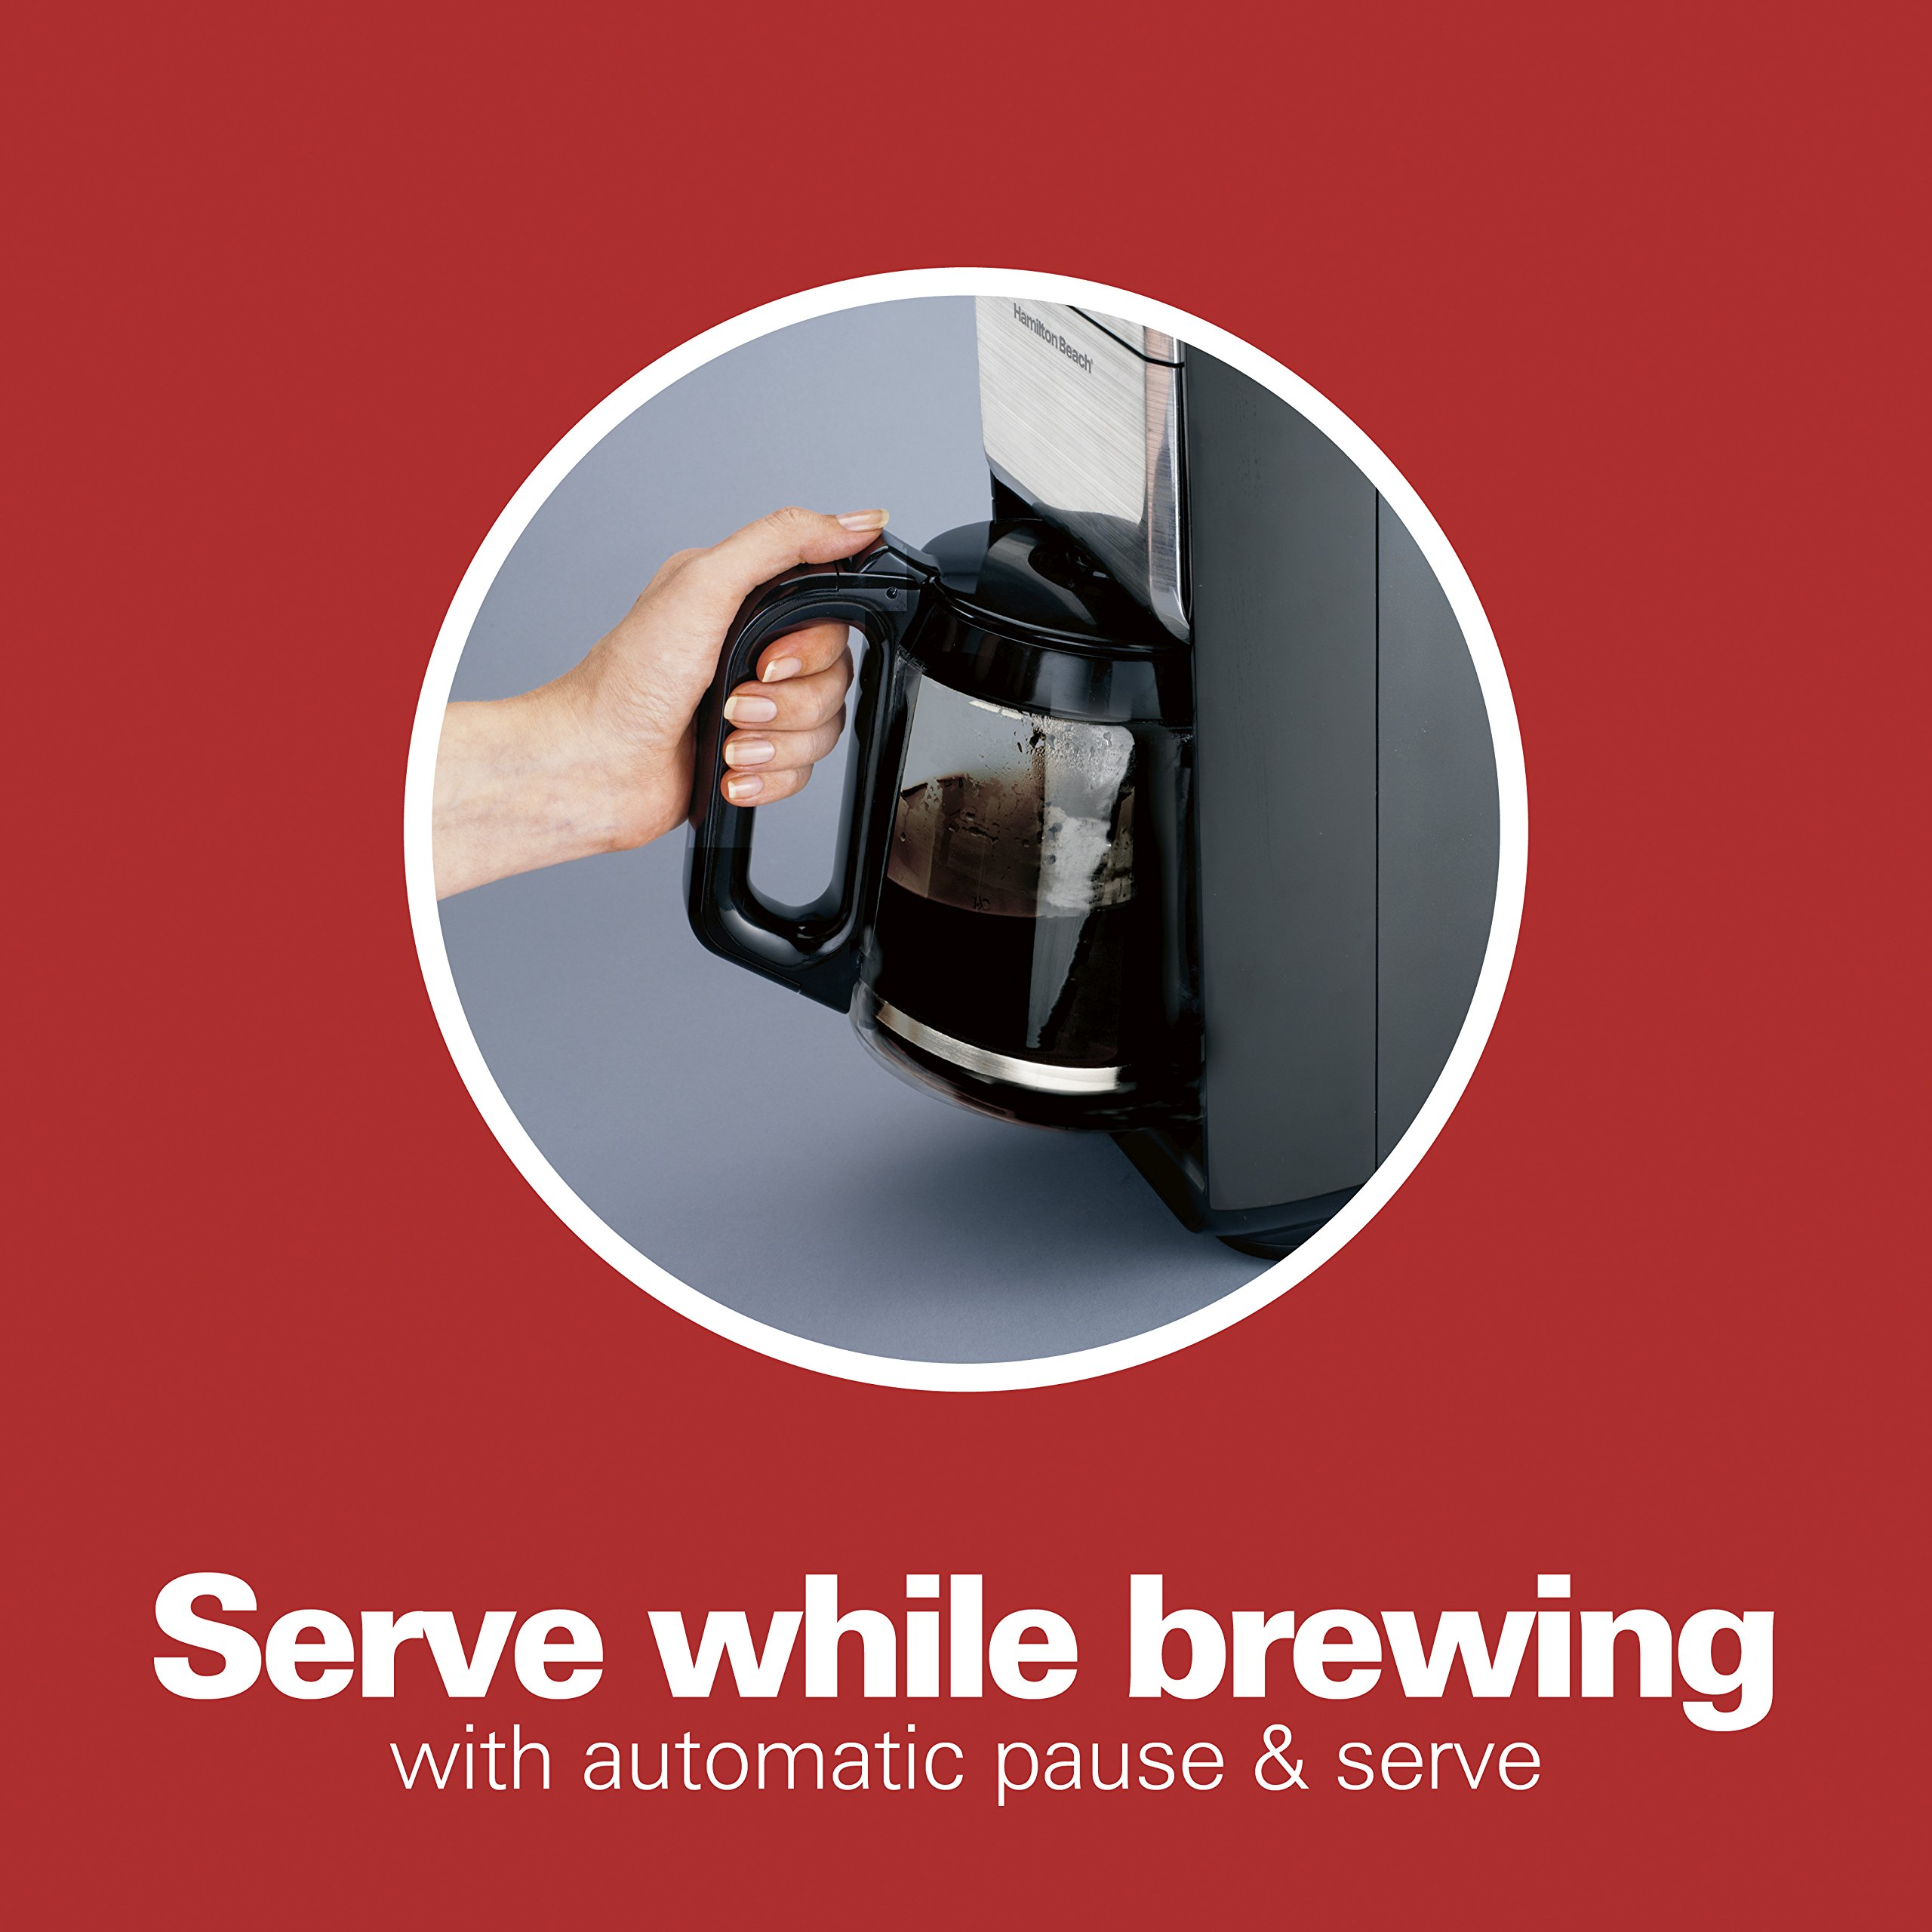 Hamilton Beach (46205) Coffee Maker, Programmable with 12 Cup Capacity, Stainless Steel by Hamilton Beach (Image #3)